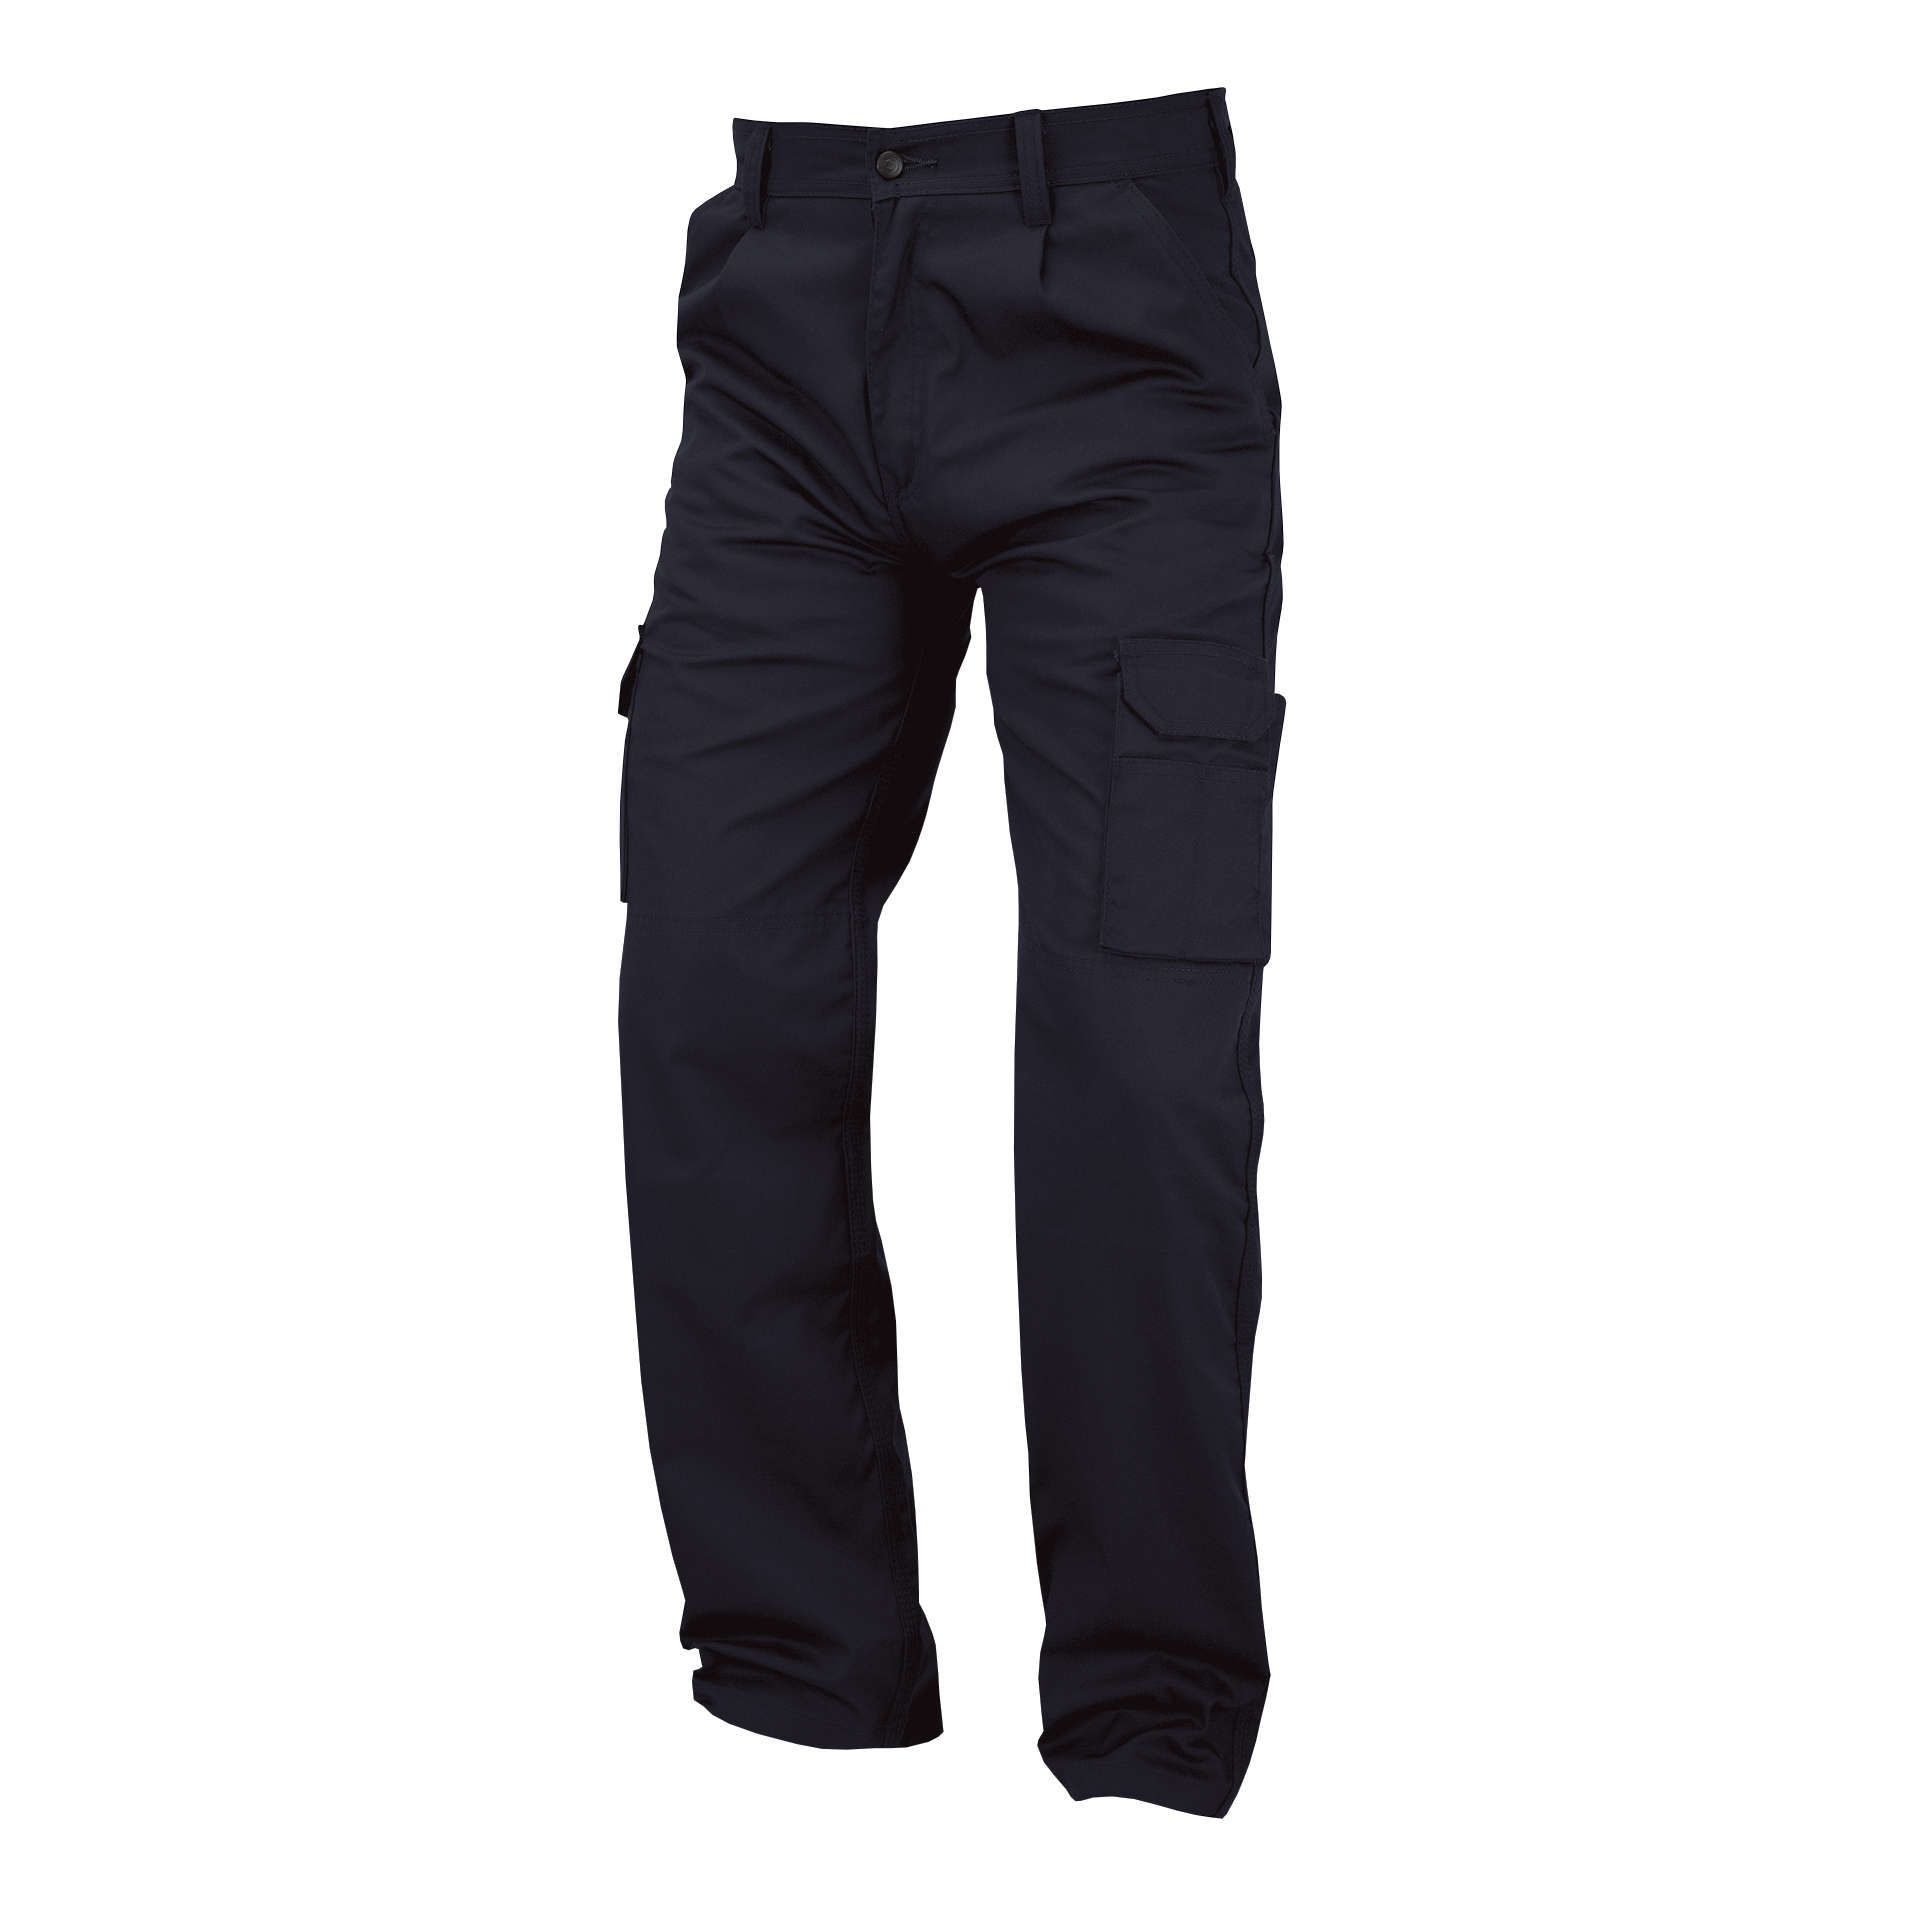 Combat Trousers Multifunctional 48in Tall Navy Blue Ref PCTHWN48T *Approx 3 Day Leadtime*